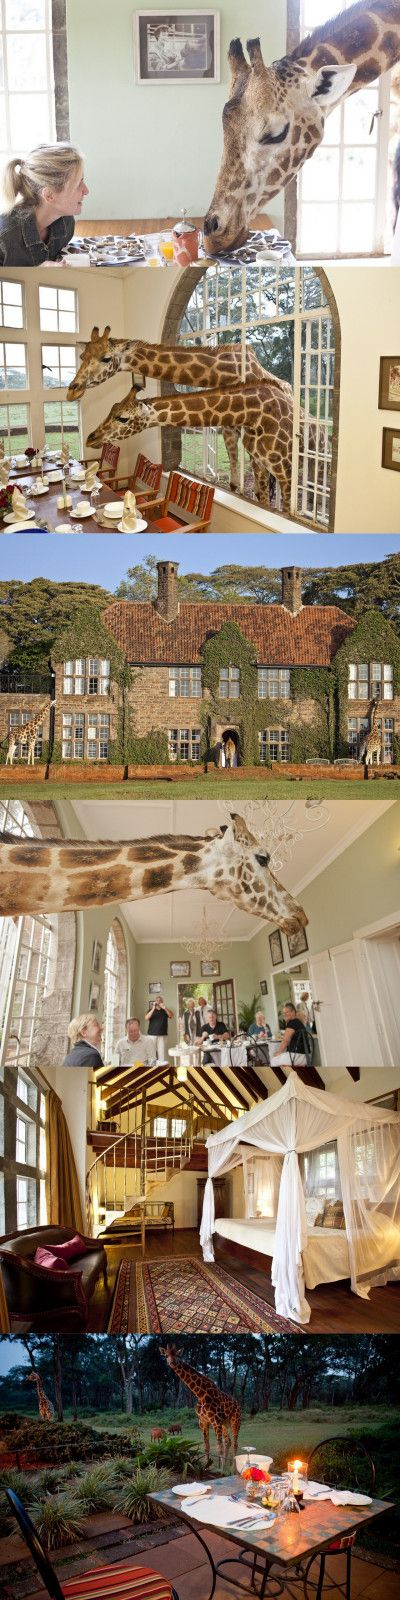 Giraffe Manor is one of the only hotels in the world where you can feed giraffe from your window